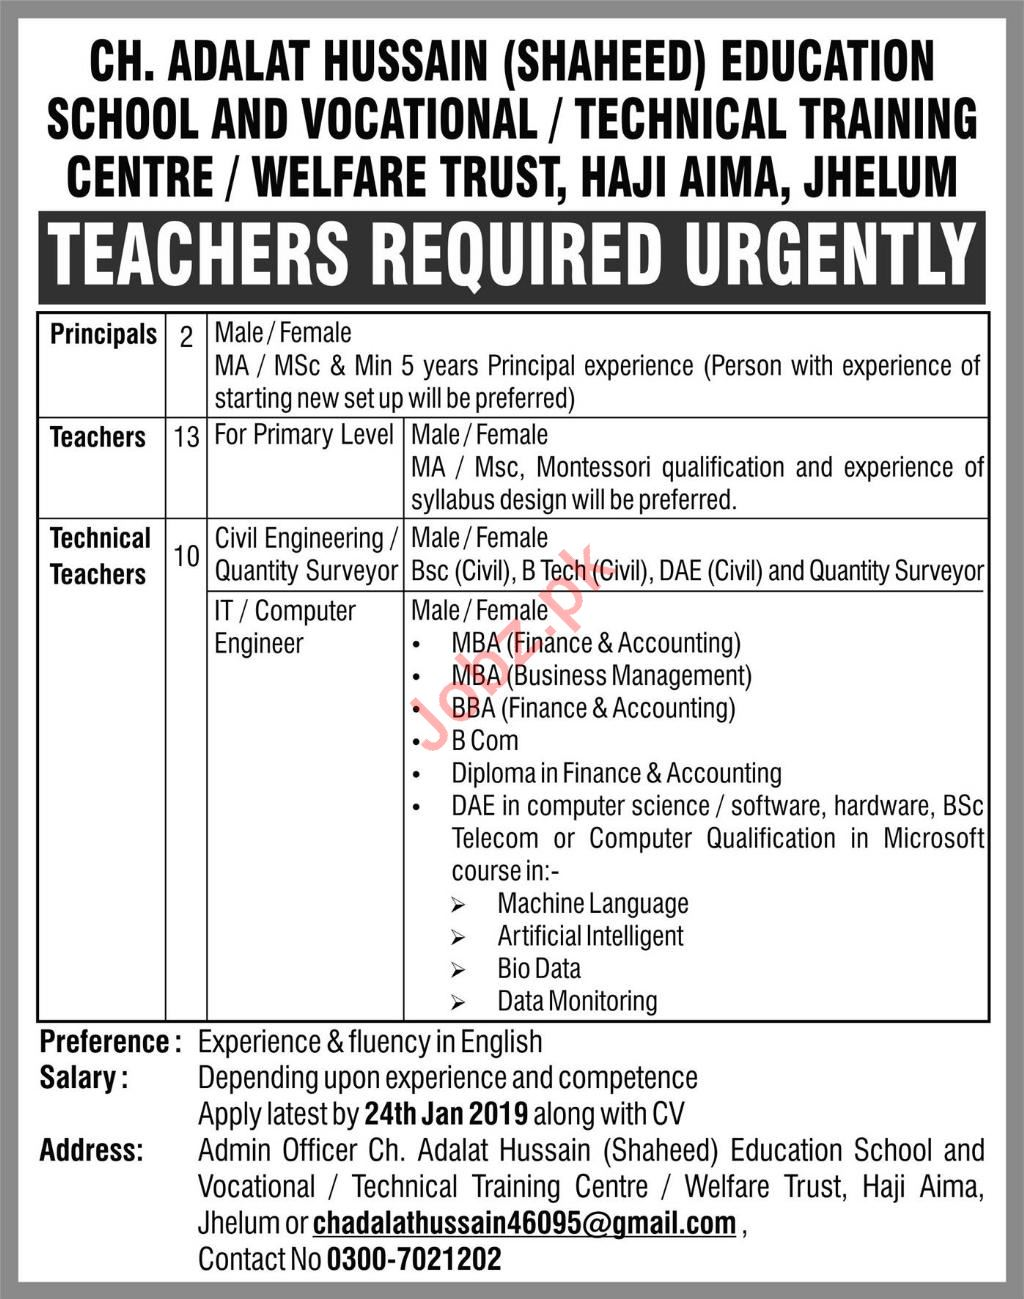 Ch Adalat Hussain Education School & Training Center Jobs